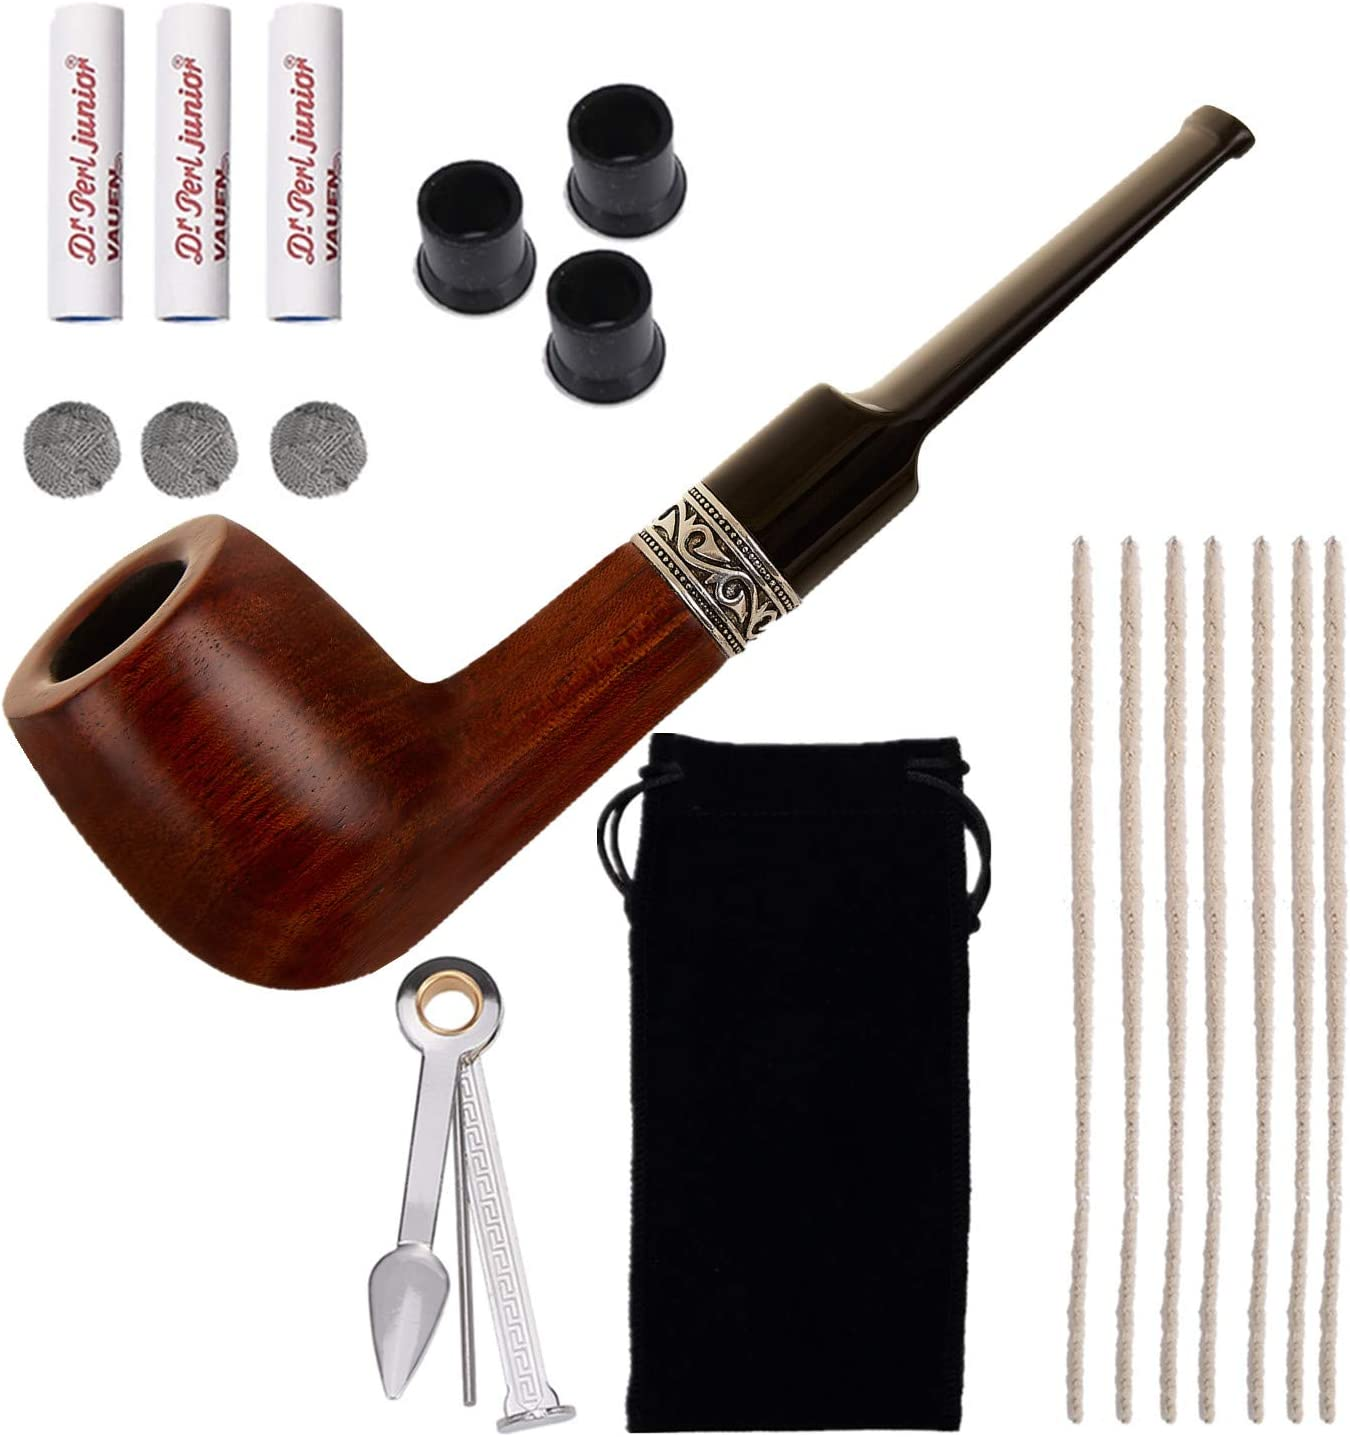 Year-end annual account Yannabis Tobacco Pipe Handmade Accesso with Max 51% OFF Smoking Wooden